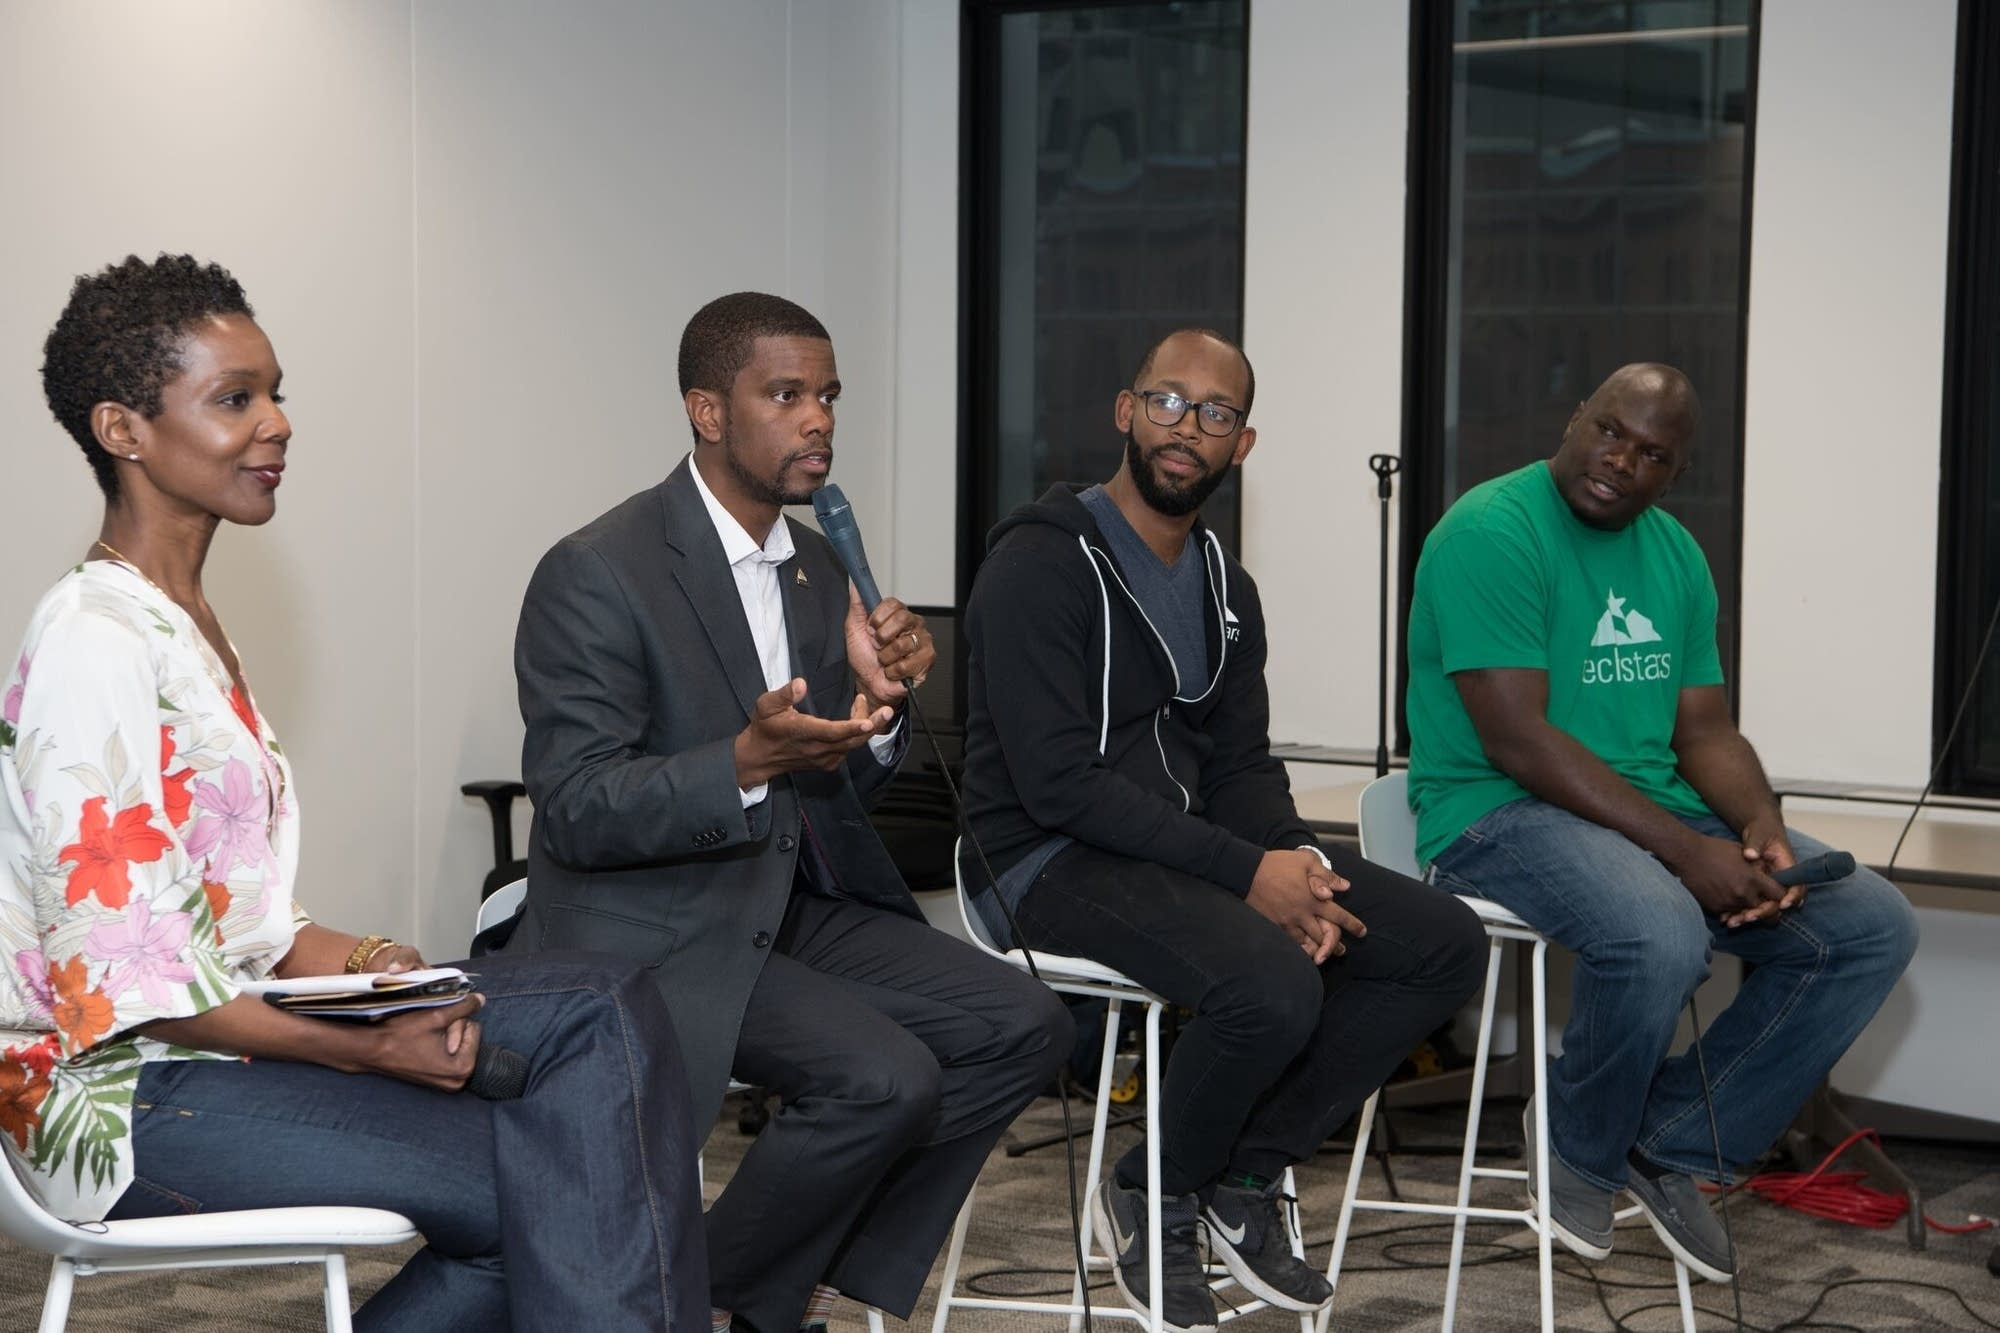 St. Paul Mayor Melvin Carter and others at Techquity meeting in June, 2018.